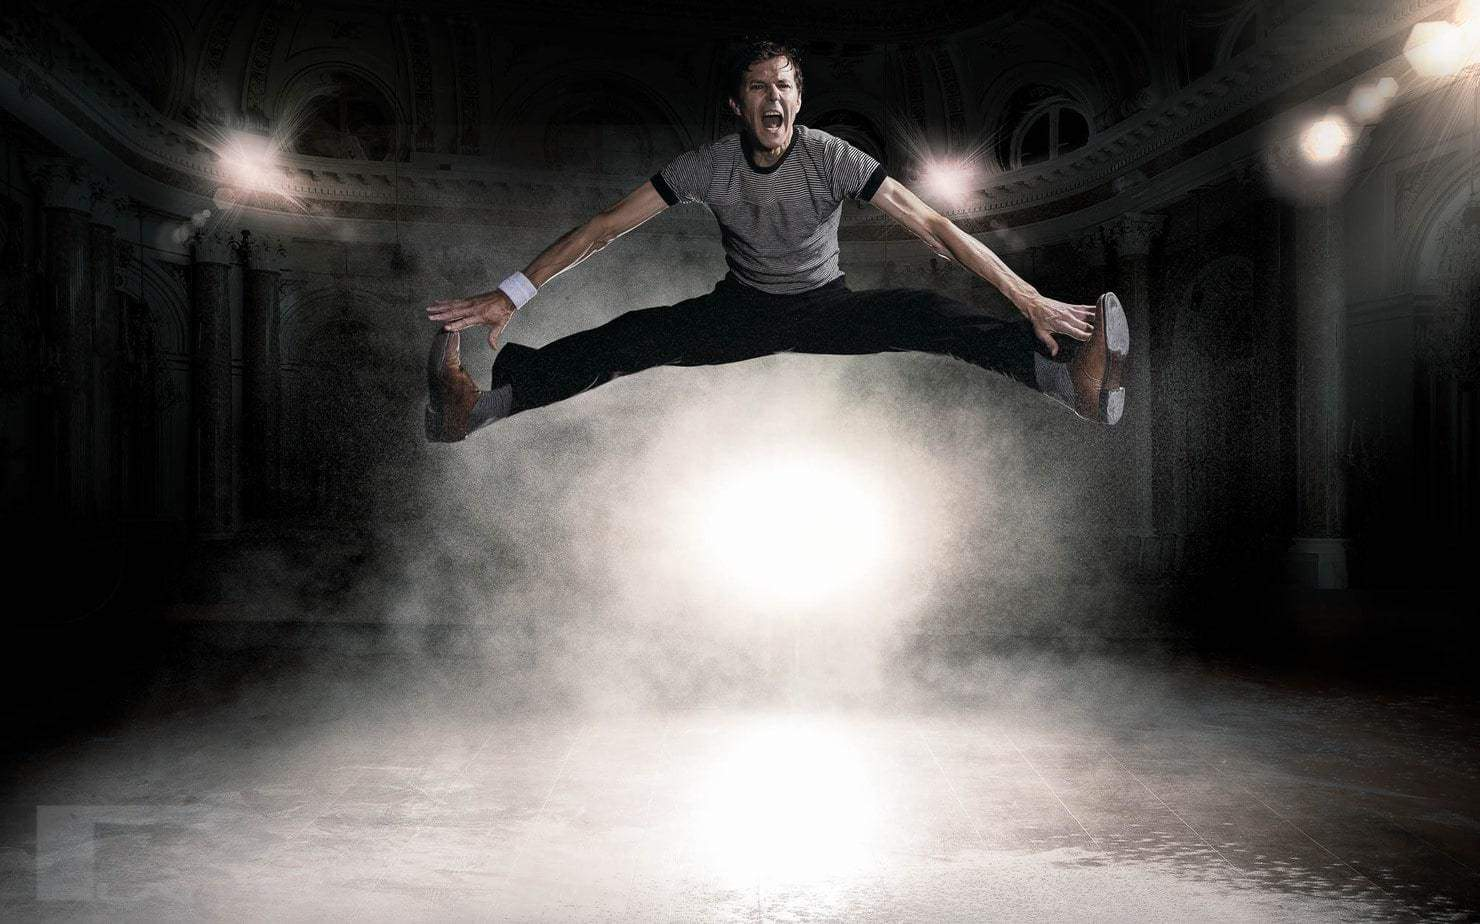 Photoshop-professional-photo-editing-northern-soul-dancer-jump